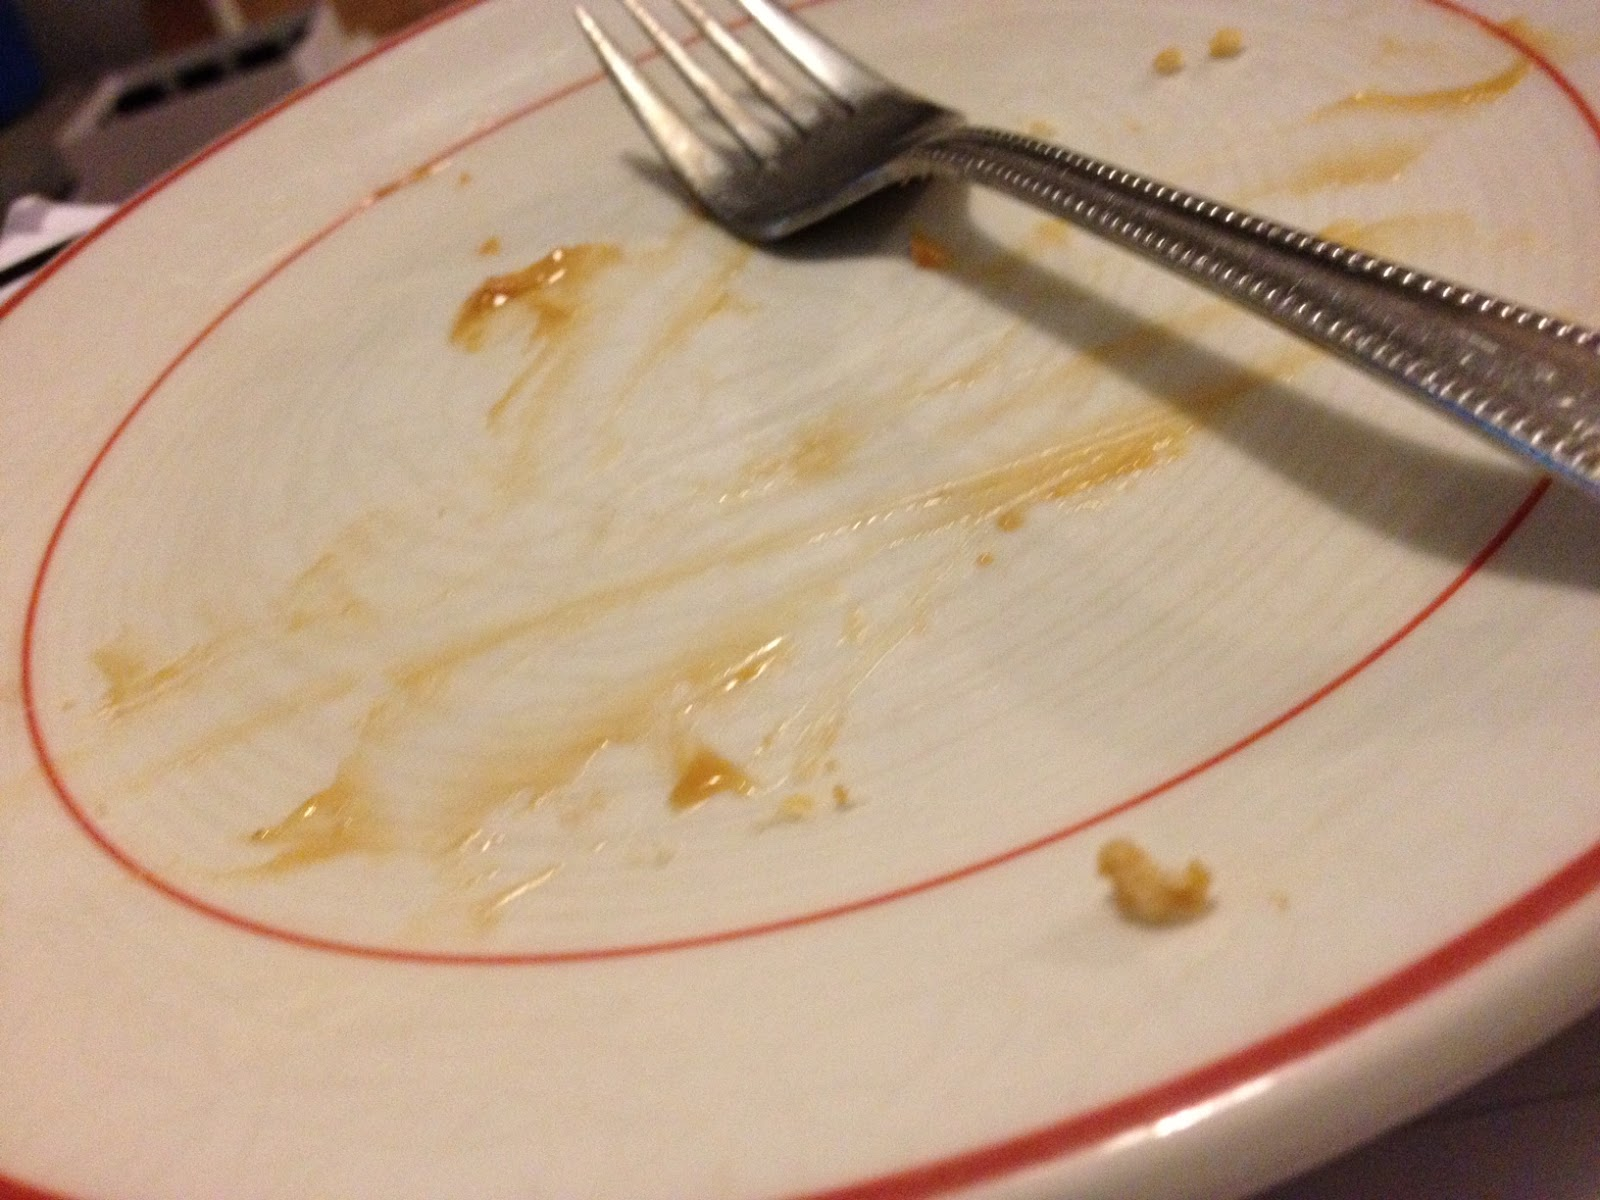 A plate scraped clean